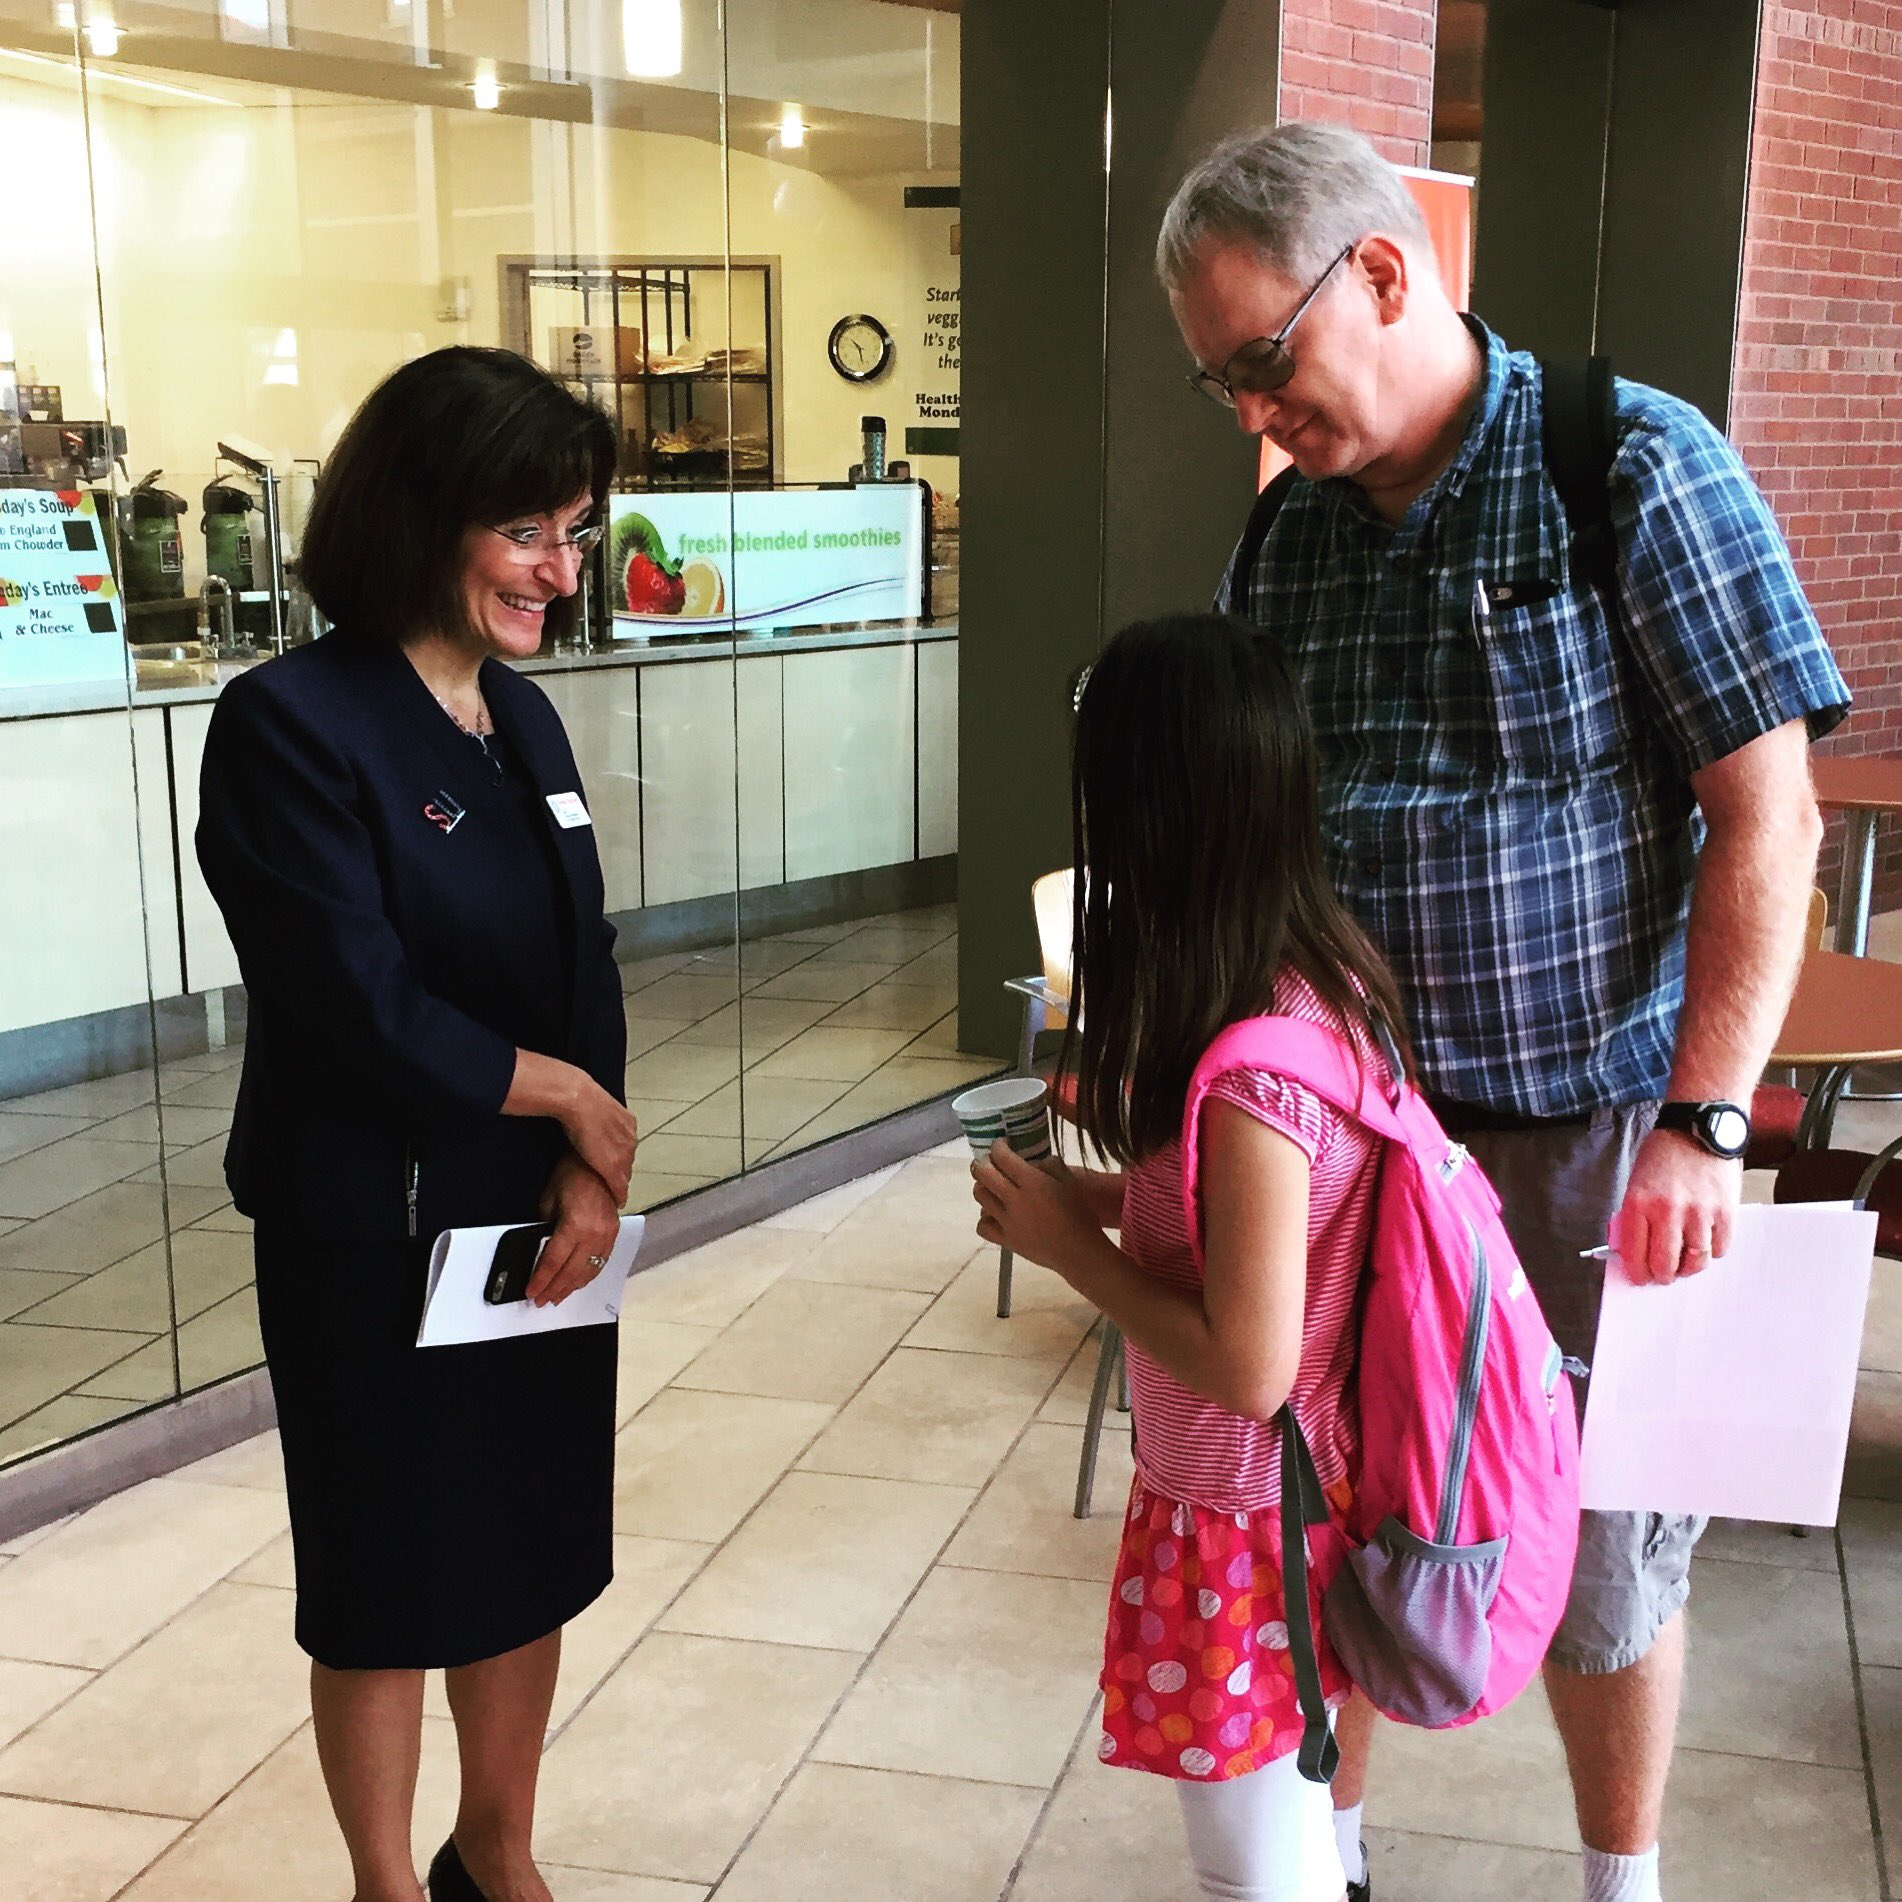 Dean Dahlberg welcomes families (and future students) at #SUWelcome https://t.co/cJQdNyOfNi